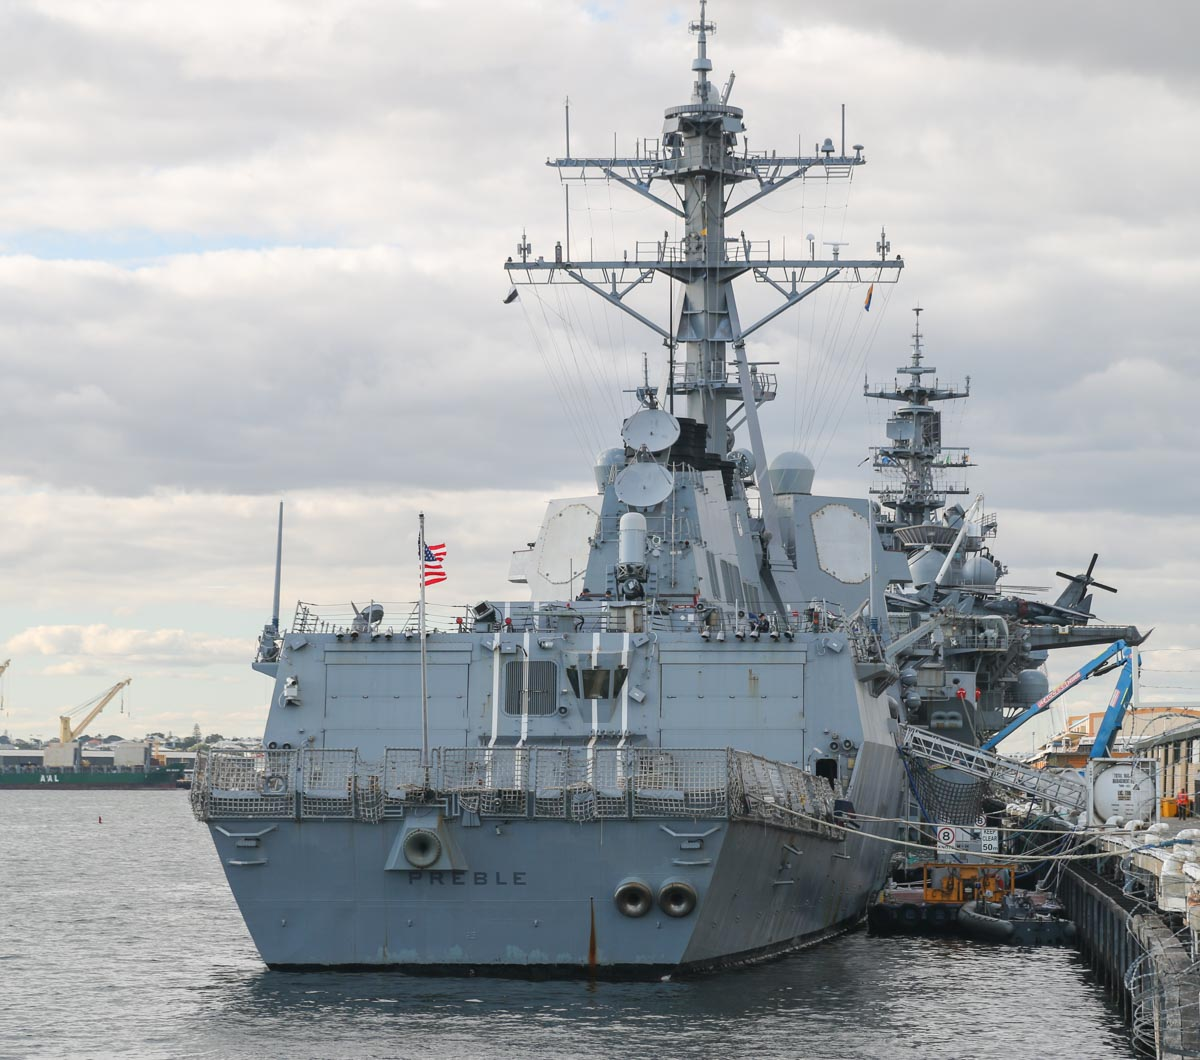 USS Preble (DDG-88), an Arleigh Burke-class guided missile destroyer, at Fremantle - Fri 26 June 2015. Had two Sikorsky MH-60R Seahawks of HSM-37 Detachment 5 'Easyriders' inside the hangars. Photo © David Eyre